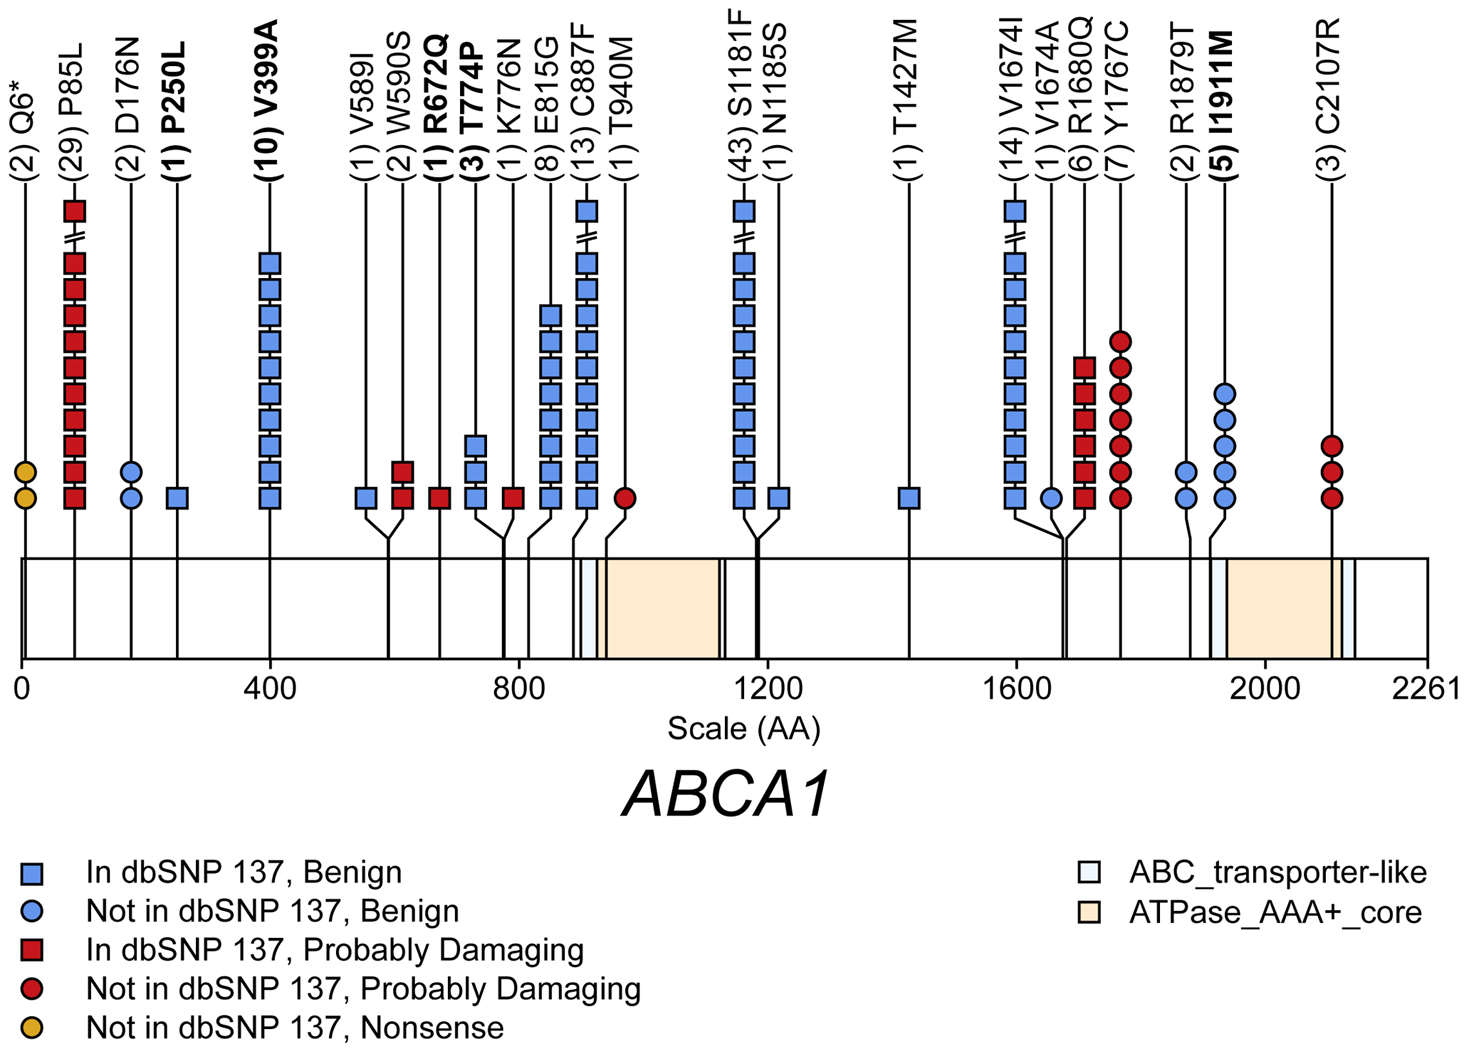 Schematic of rare (MAF<1%) non-synonymous variants used in the gene-level test of total cholesterol (TC) in gene <i>ABCA1</i>.